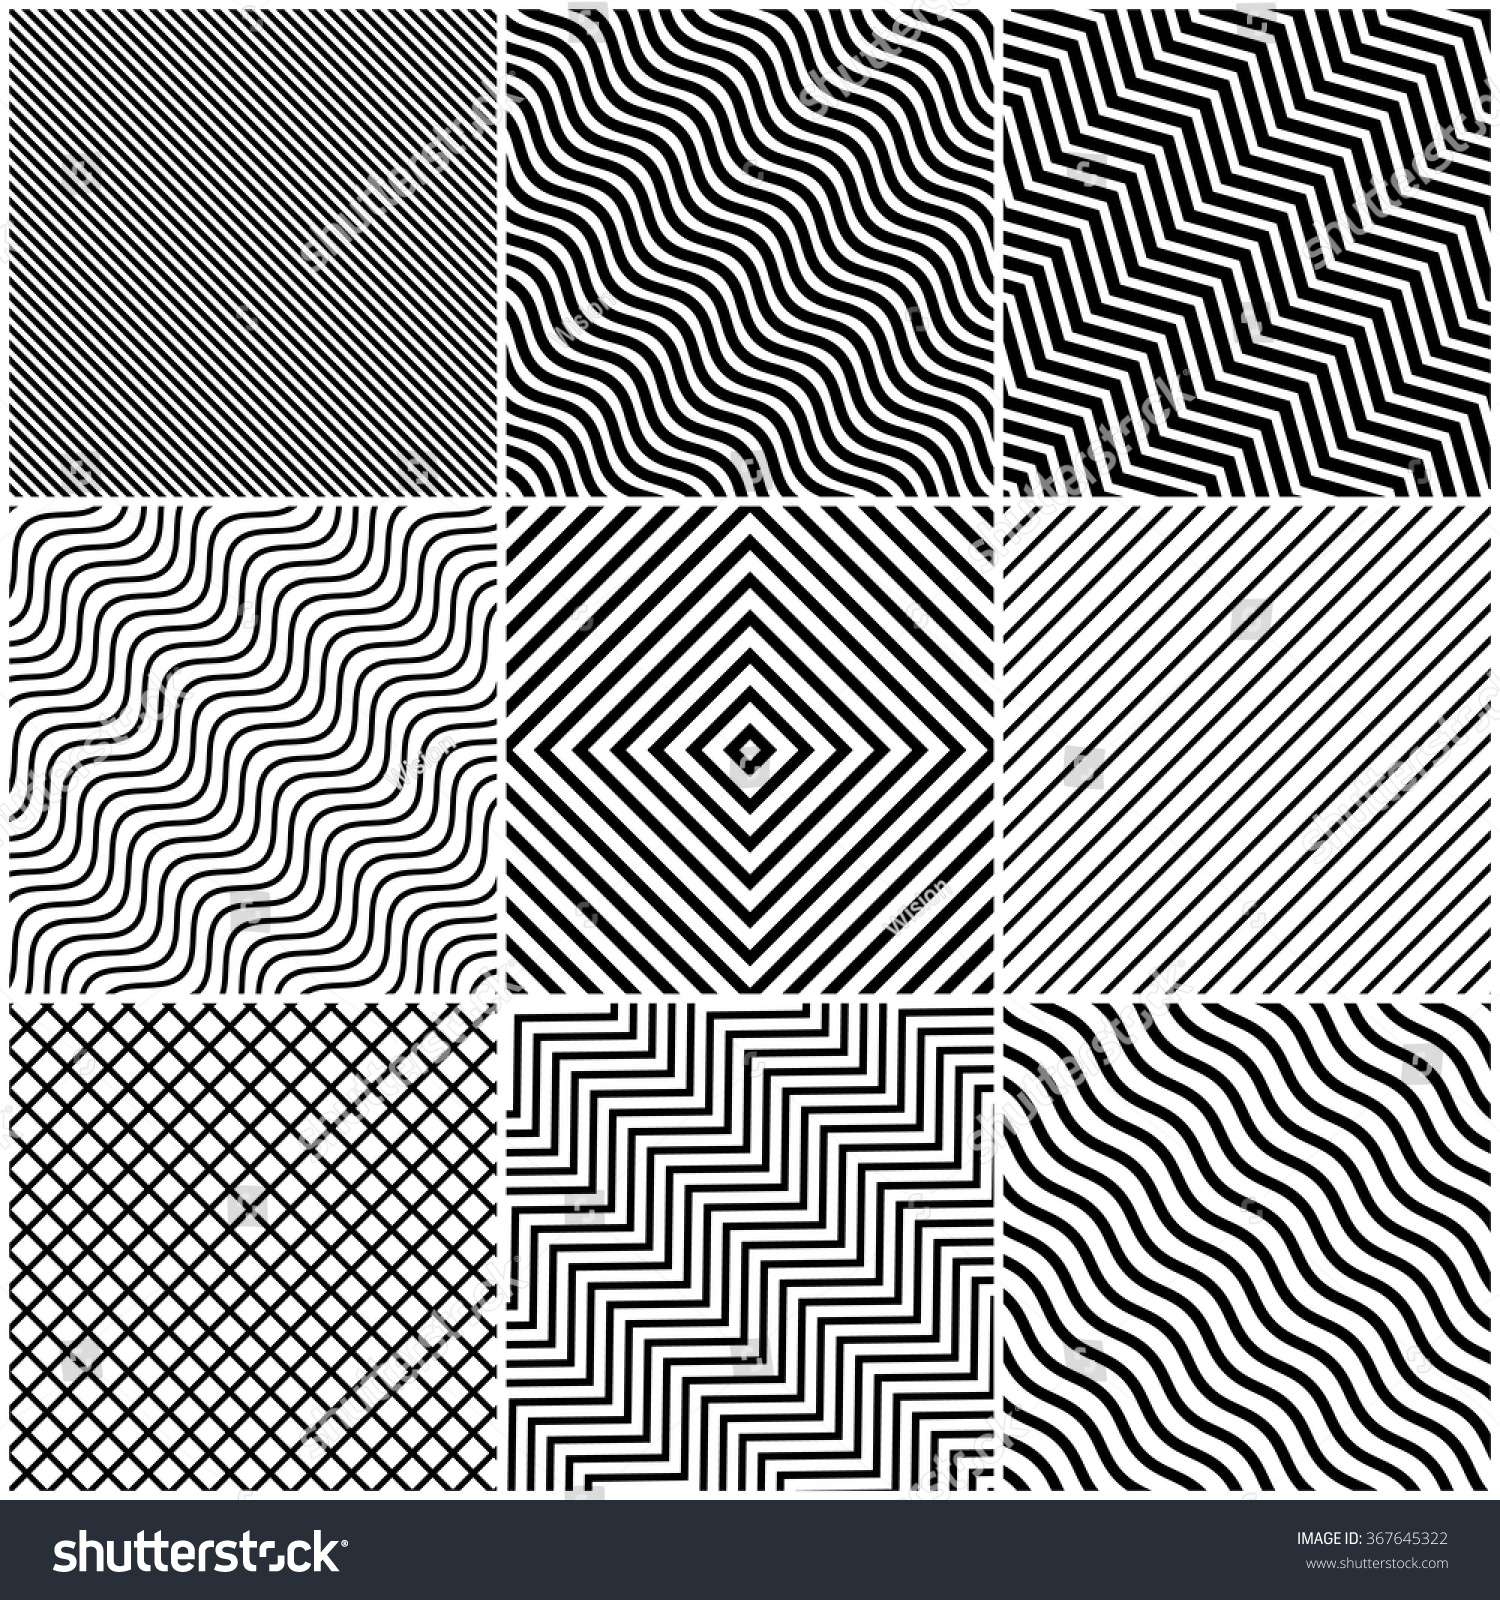 Line Design Images : Simple slanted black lines background set stock vector